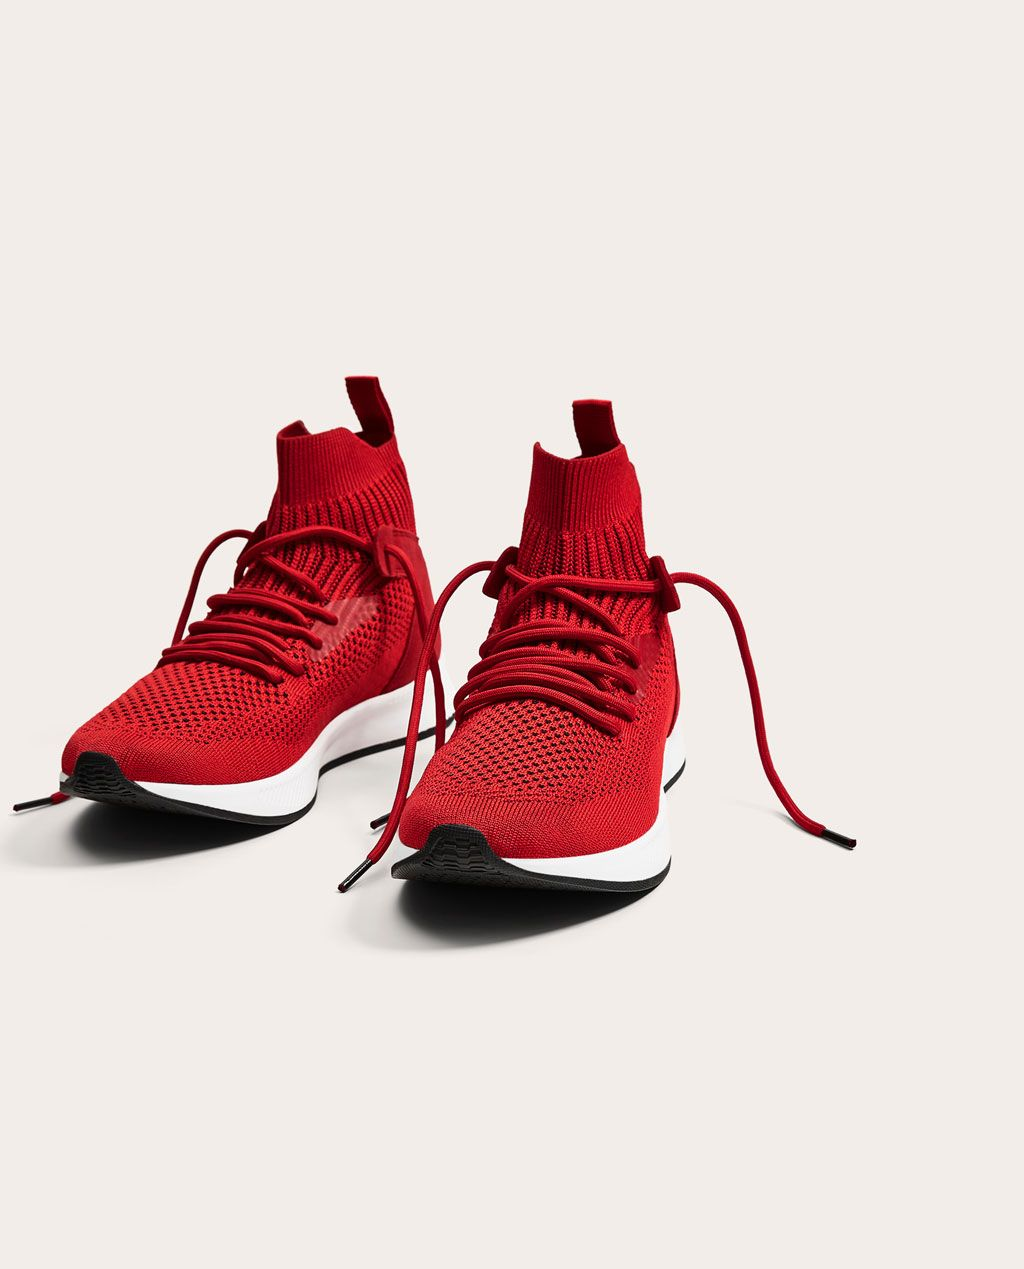 timeless design 99c80 c274c CONTRASTING RED HIGH TOP SNEAKERS-NEW IN-MAN   ZARA United States